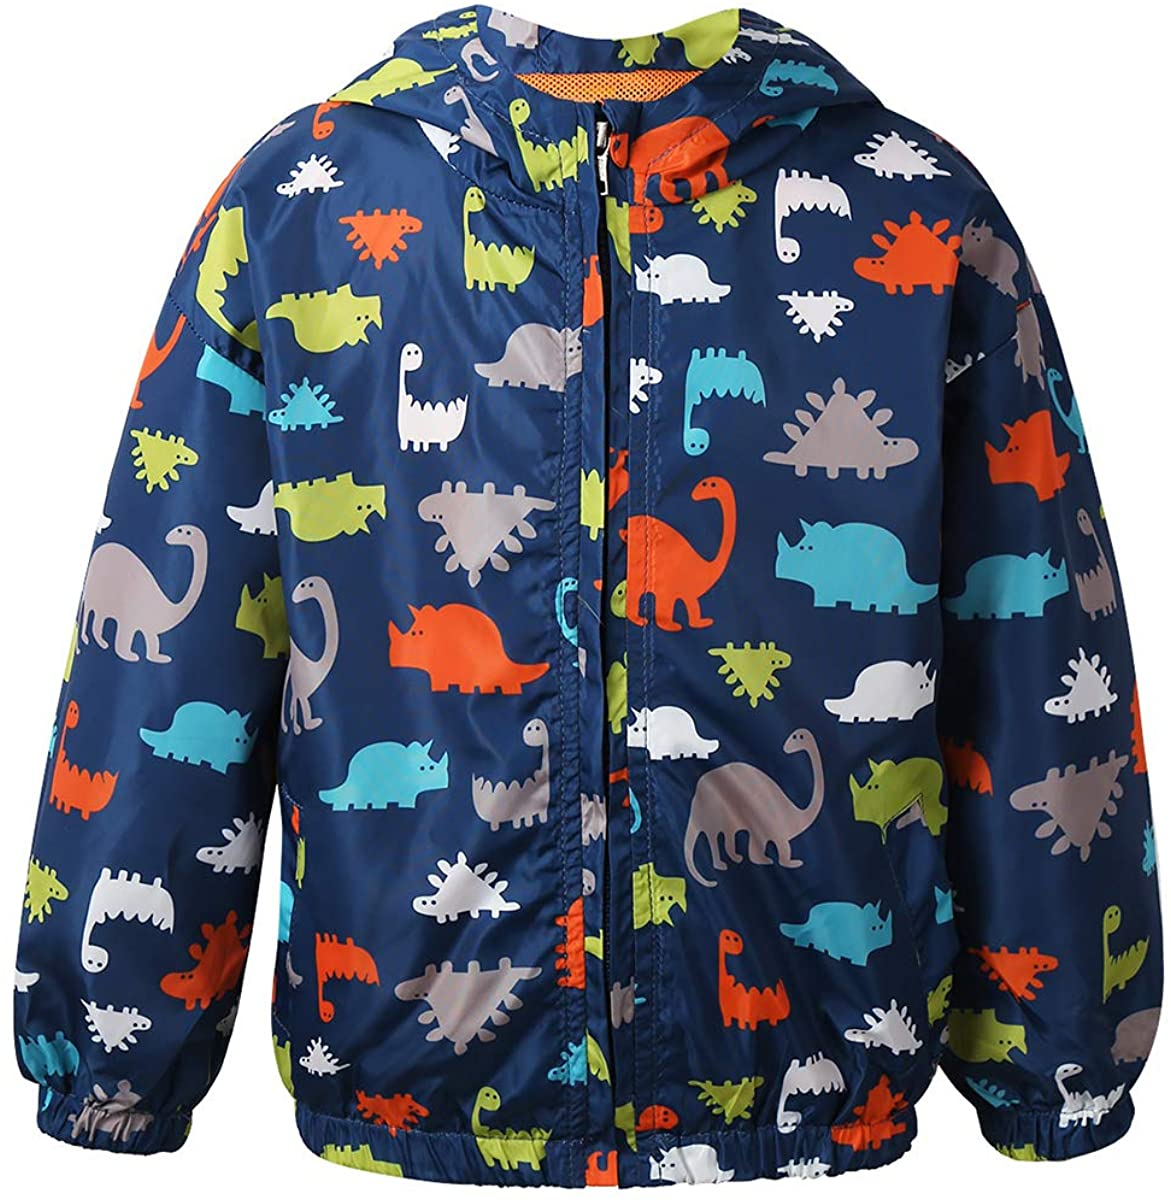 Alvivi Toddler Baby Boys Cartoon Dinosaur Printed Hooded Zipper Jacket Raincoat Breathable Windproof Outwear Windbreaker